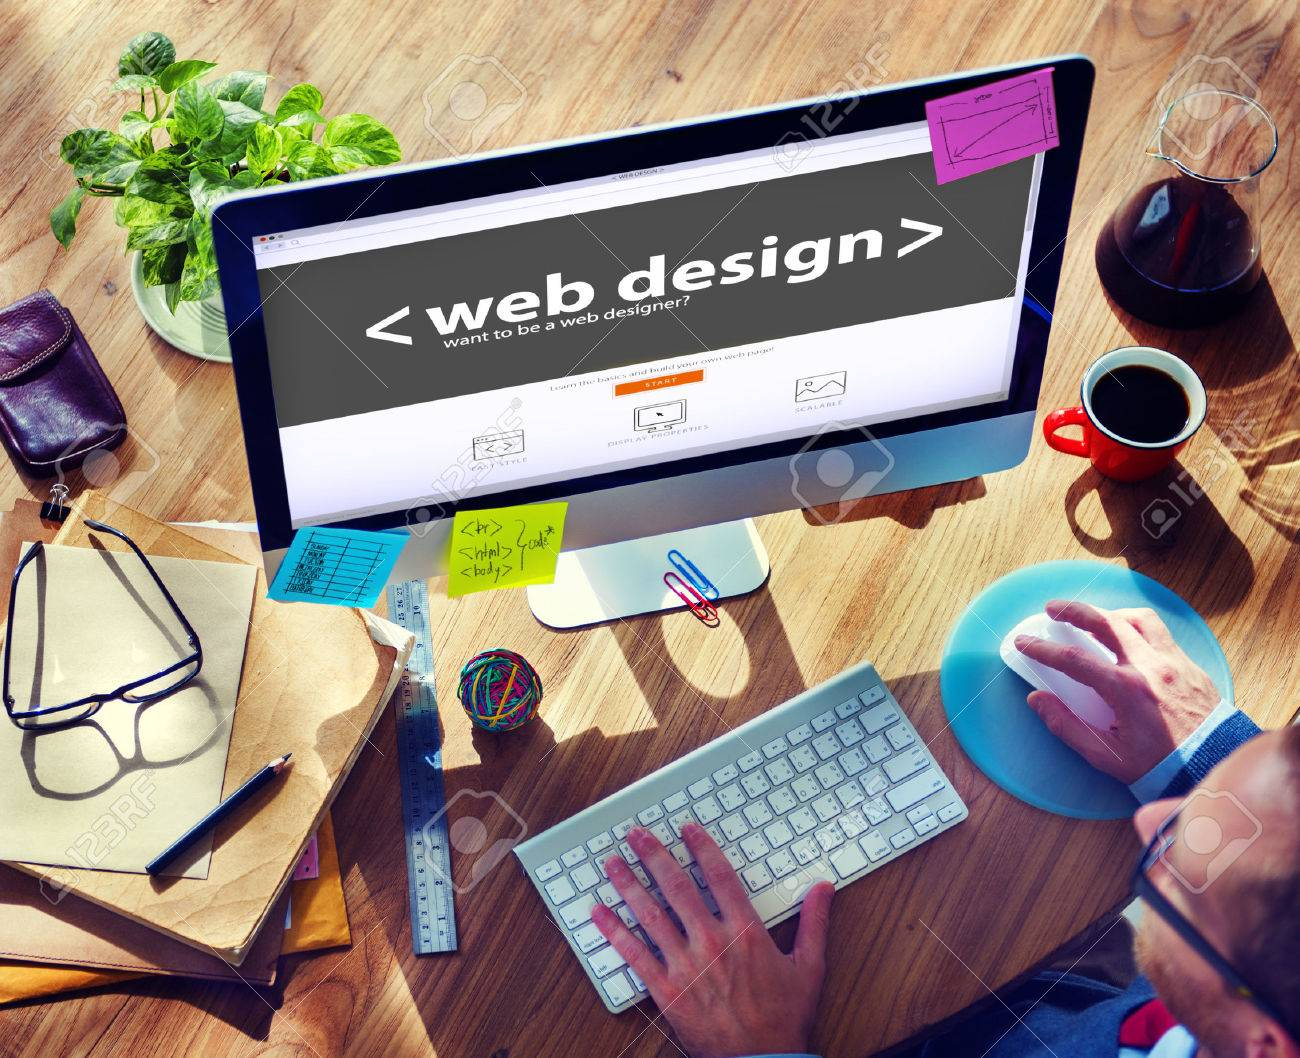 34406843-web-designer-working-on-a-new-project.jpg